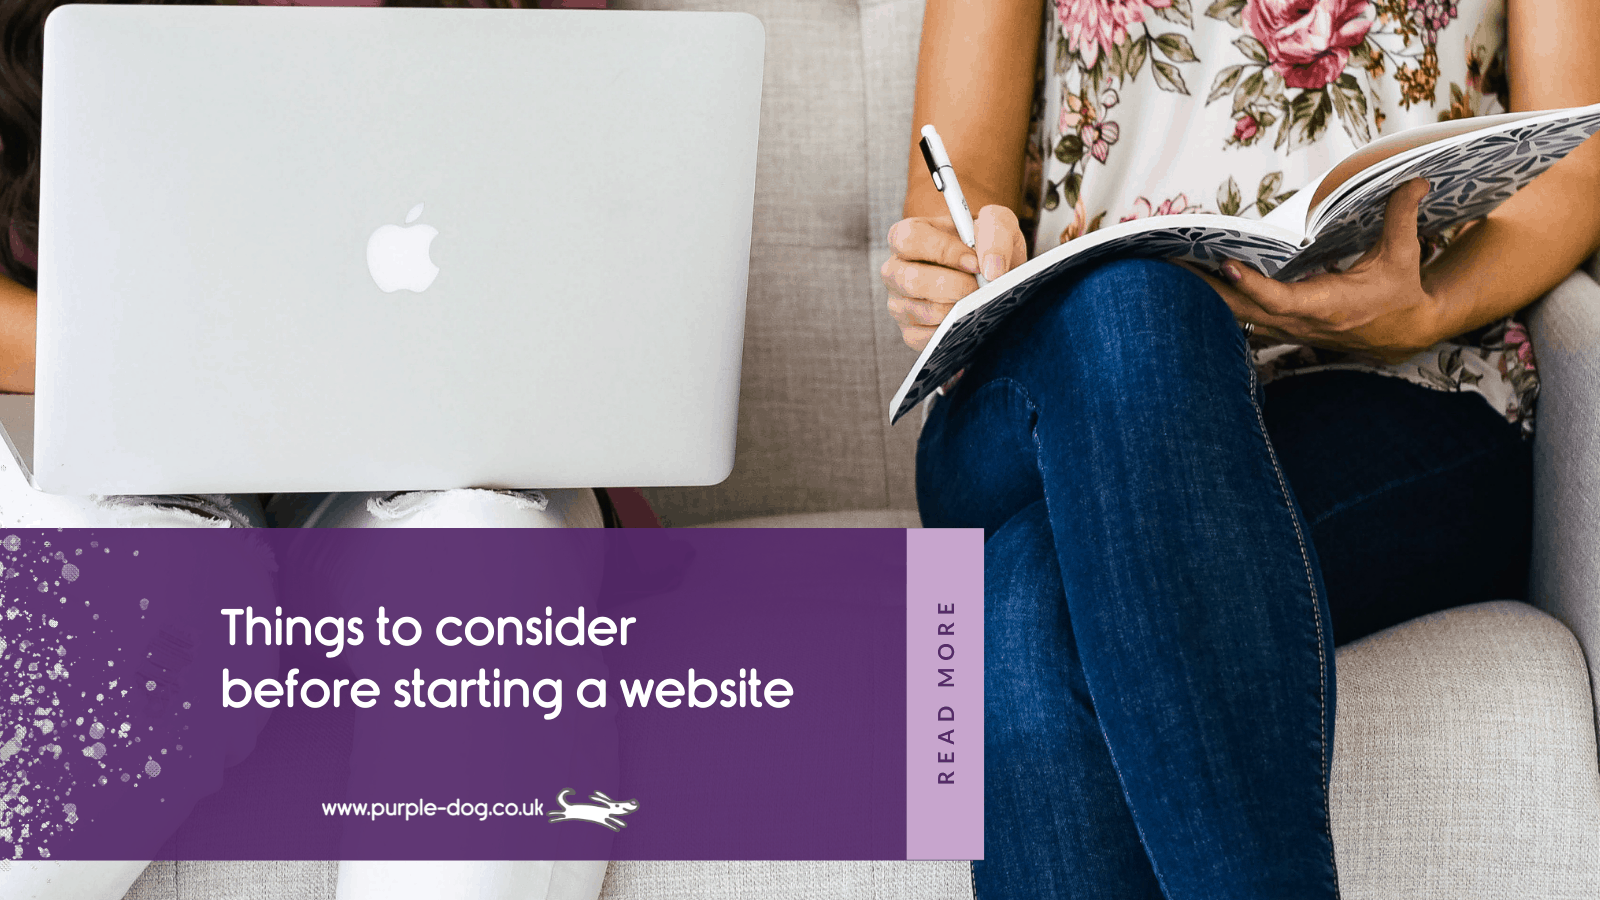 Things to consider before starting a website